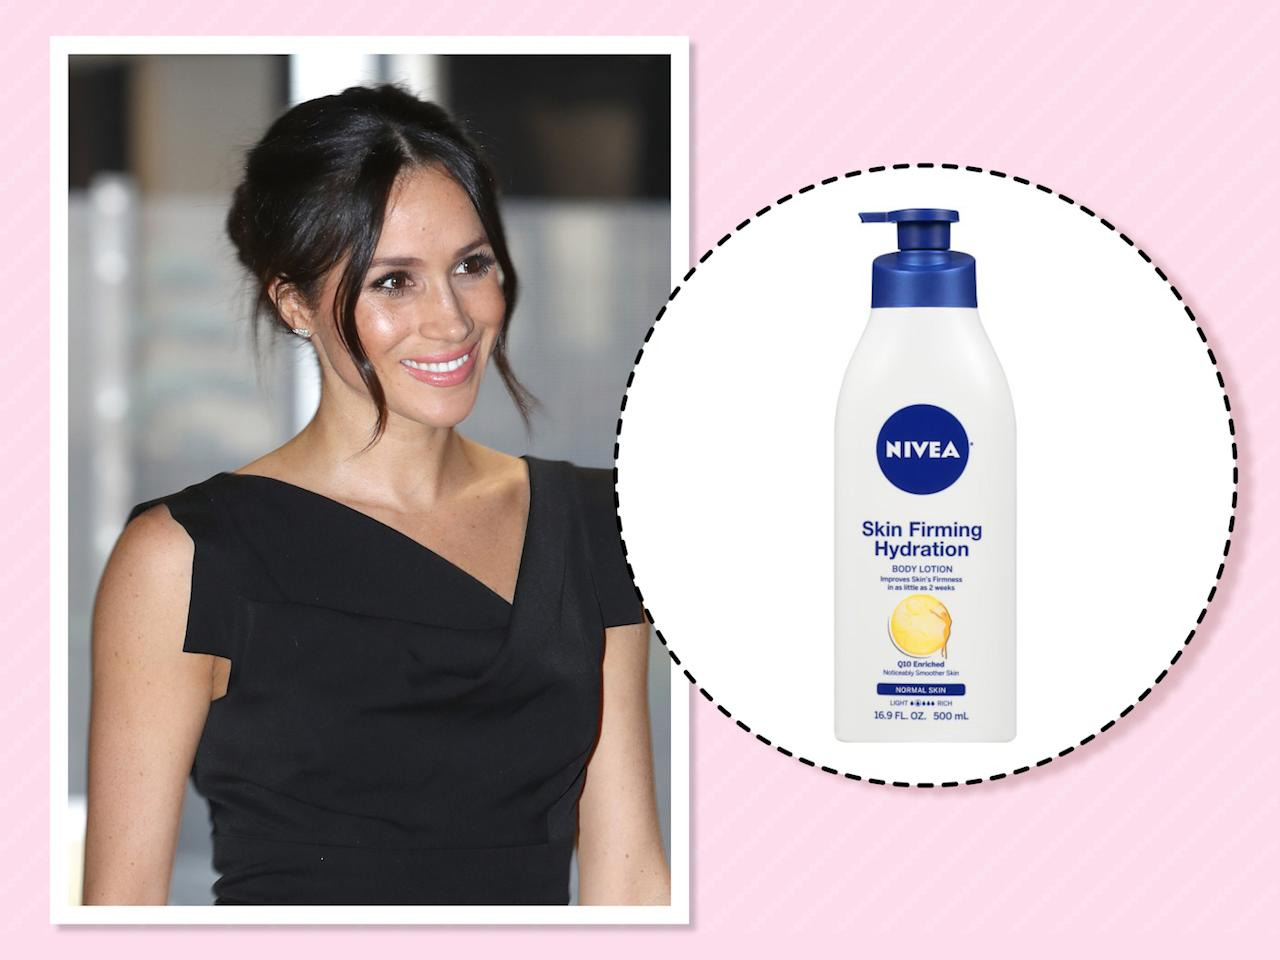 """<p>She's blessed with great hair and skin, but Markle <a rel=""""nofollow"""" href=""""https://beautybanter.com/banter-babe-meghan-markle"""">told Beauty Banter</a> that she can't live without one drugstore body lotion. """"I use this religiously,"""" she told the blog. """"It's honestly my favorite lotion on the market; it's so affordable and makes my skin look and feel amazing. I would buy a case of this at a time if I could find it."""" (Photo: Getty Images)<br /><strong><a rel=""""nofollow"""" href=""""https://fave.co/2PojJff"""">Shop it</a>:</strong> $8, <a rel=""""nofollow"""" href=""""https://fave.co/2PojJff"""">target.com</a> </p>"""